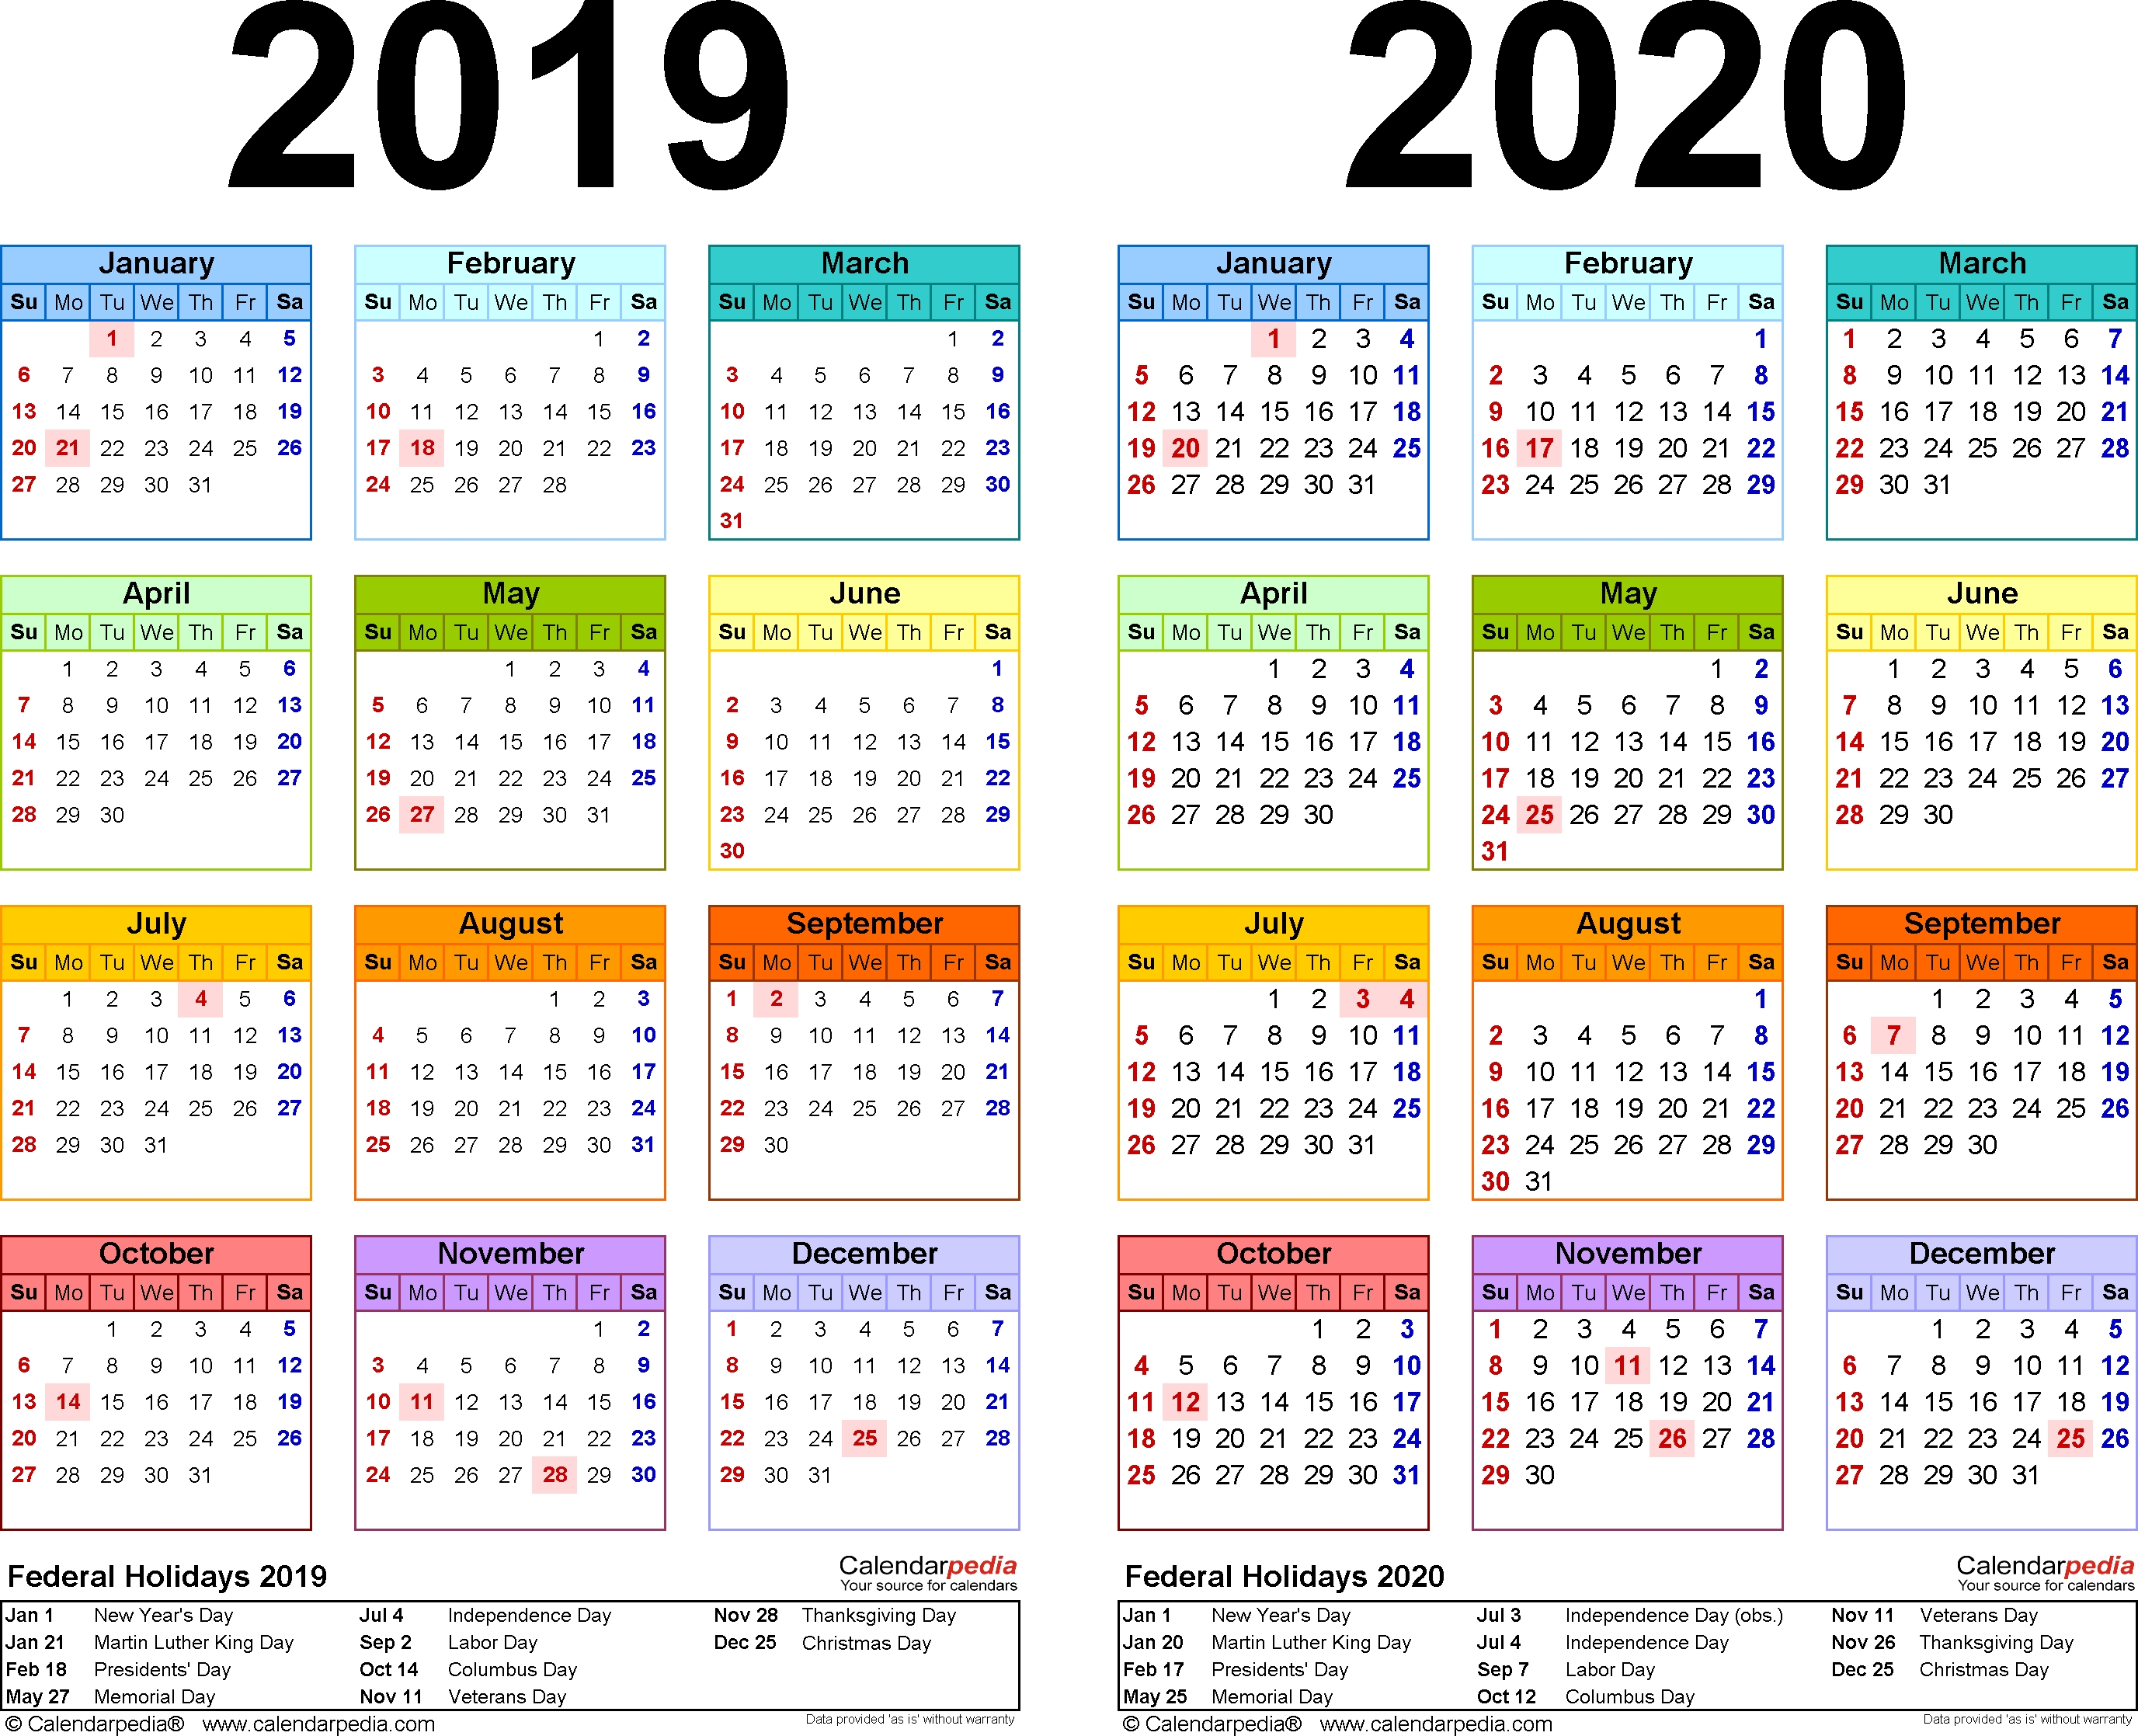 2019-2020 Calendar - Free Printable Two-Year Word Calendars inside Free Editable Calander 2019-2020 Start On Sunday